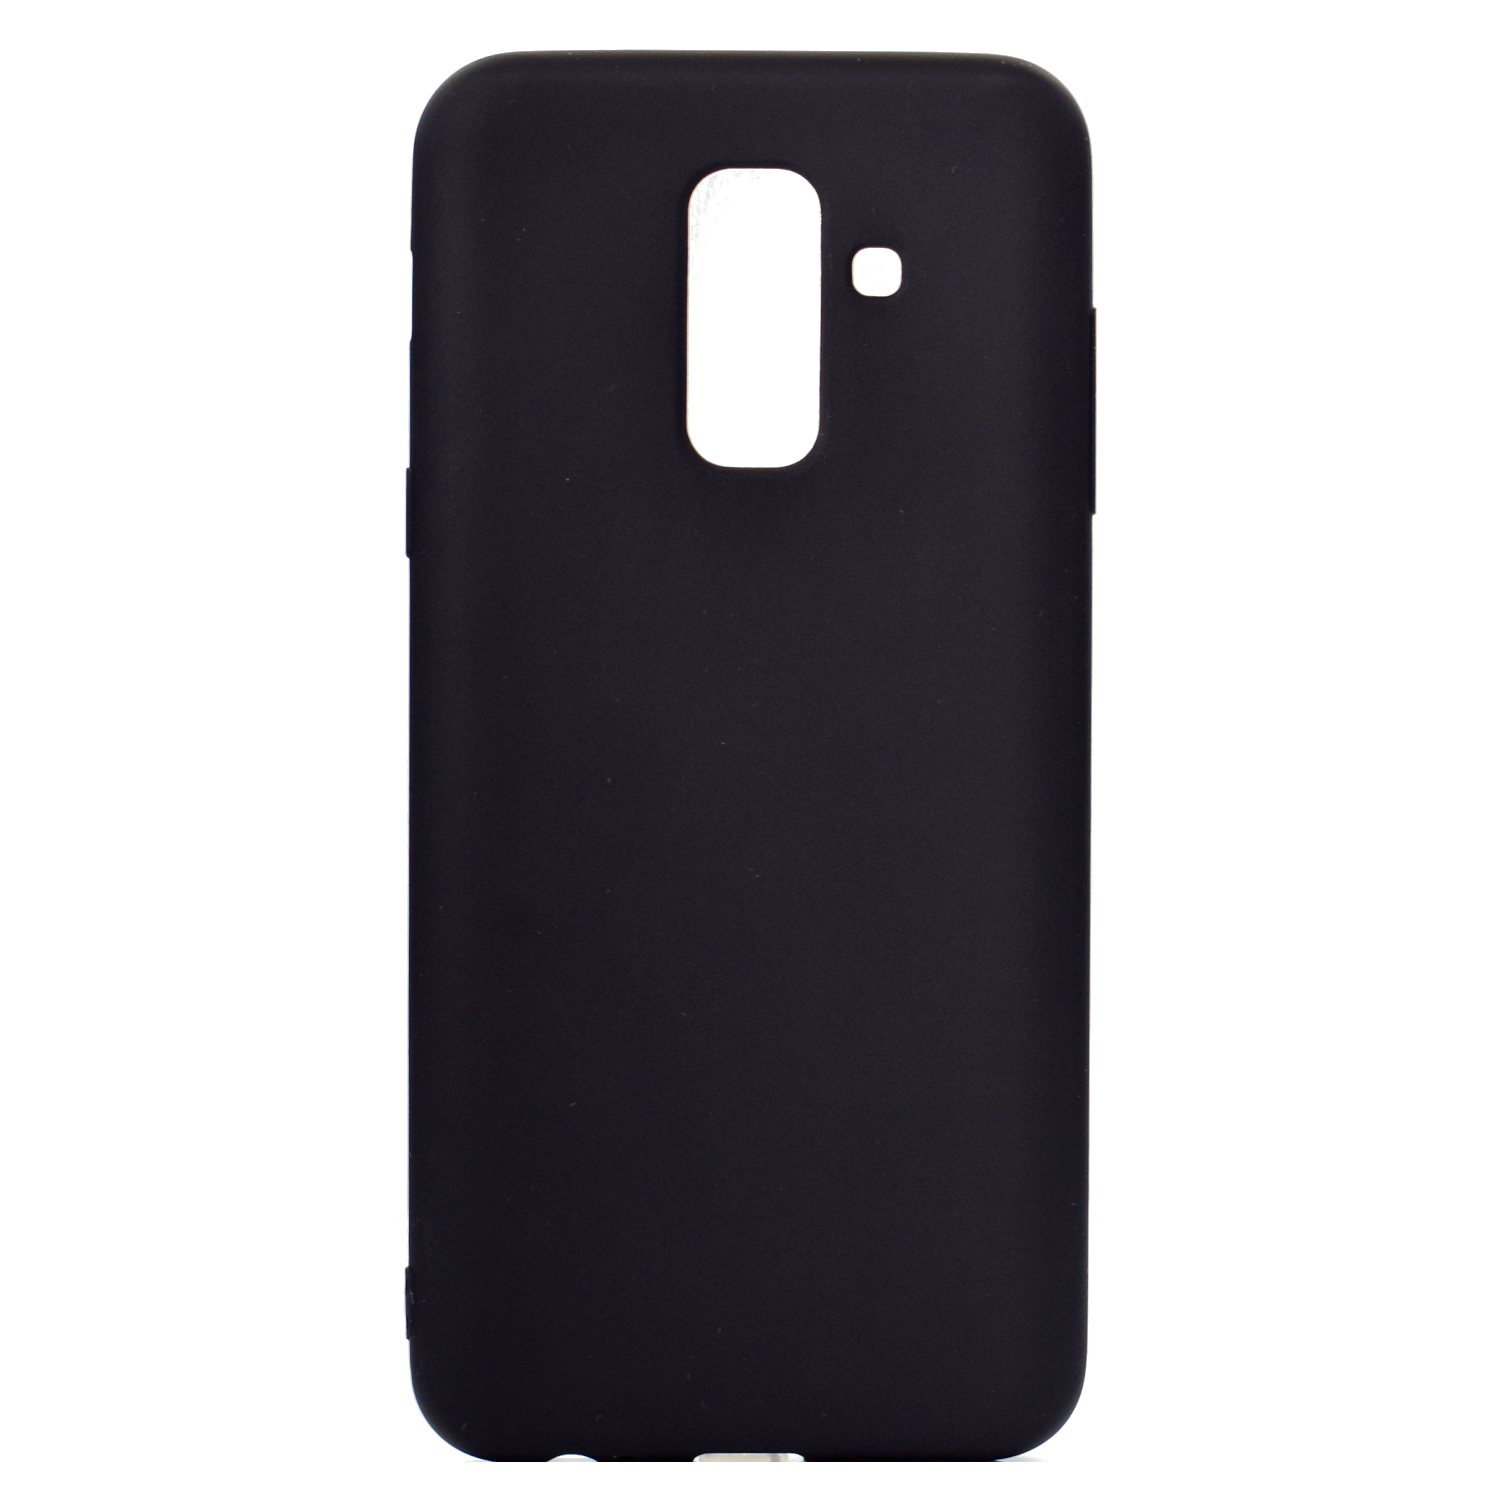 for Samsung A6 plus 2018 Lovely Candy Color Matte TPU Anti-scratch Non-slip Protective Cover Back Case black